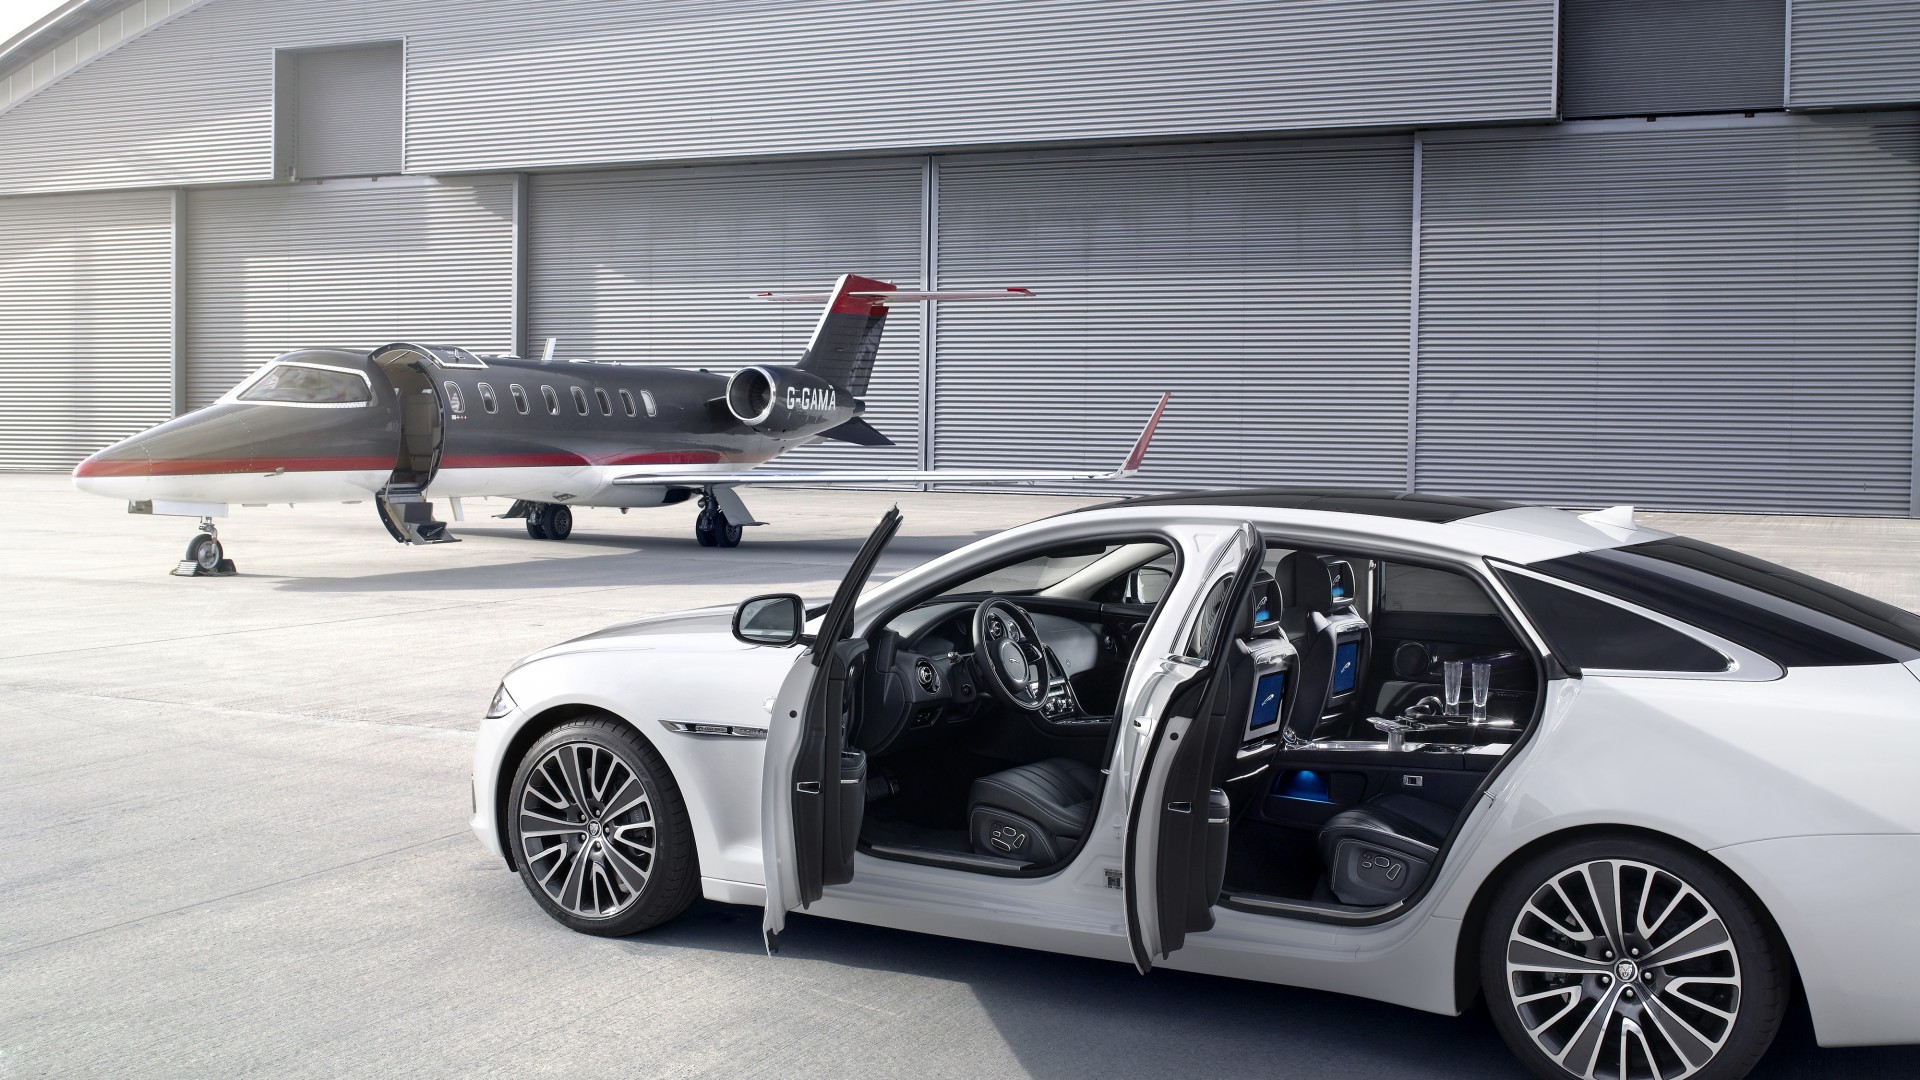 Jaguar XJ, X351, luxury cars, sports car, supercar, test drive, review, aircraft, runway (horizontal)